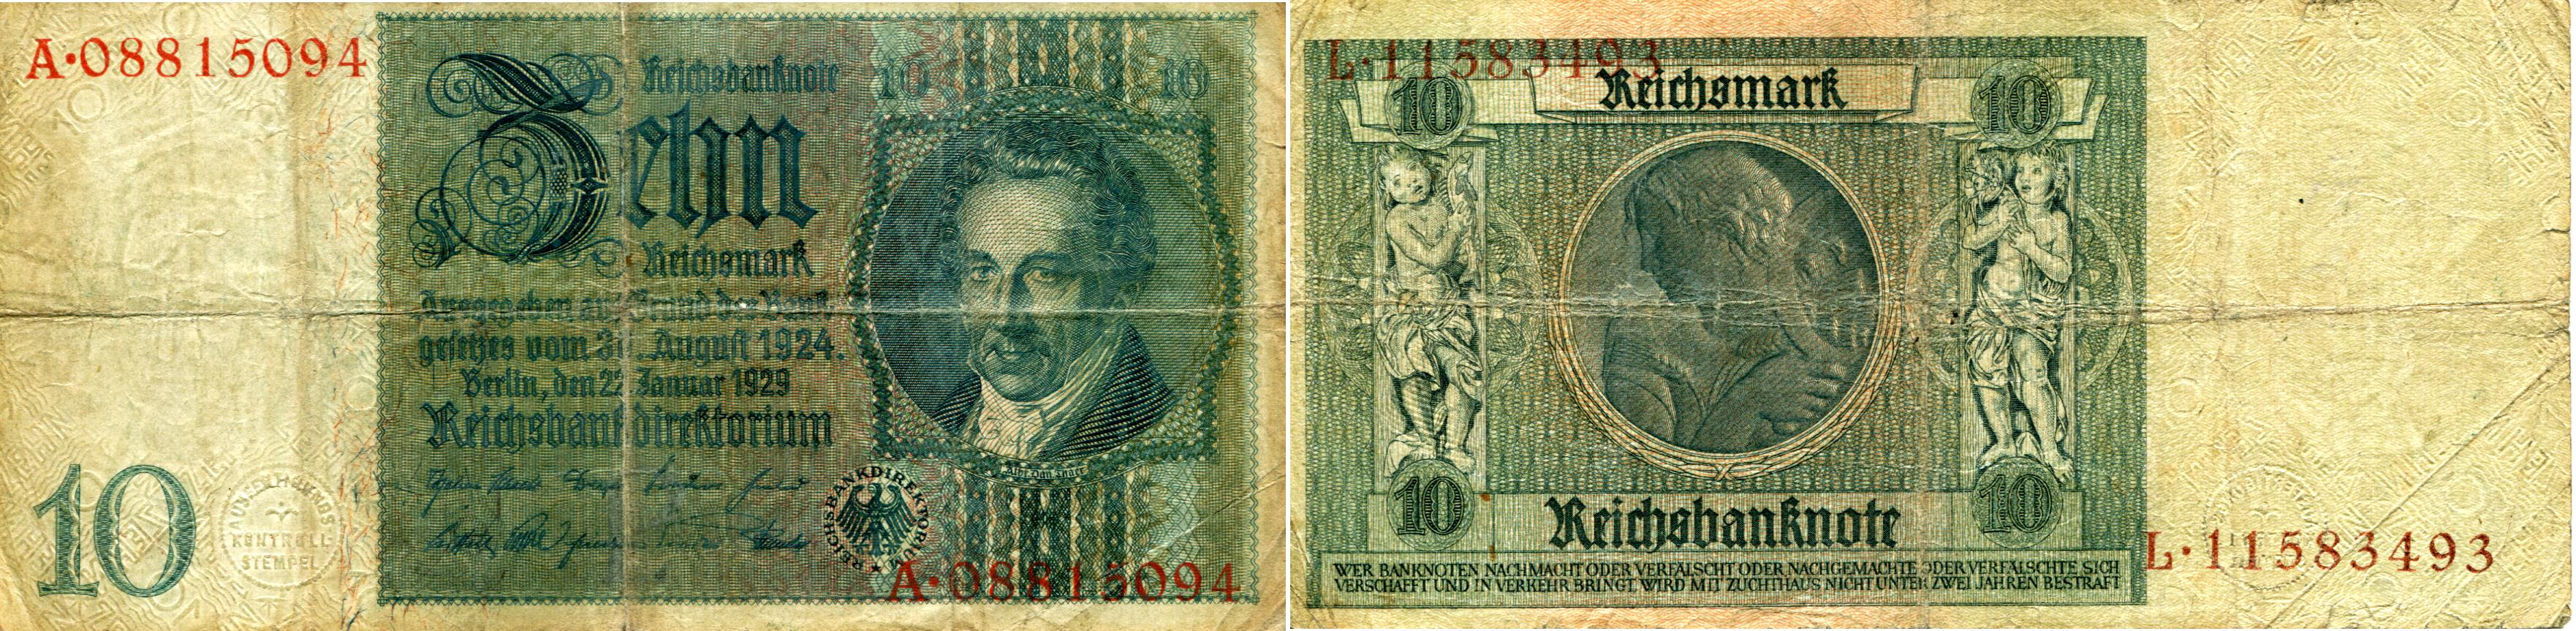 German coins and currency germany 10 reichmark note 1929 p180 buycottarizona